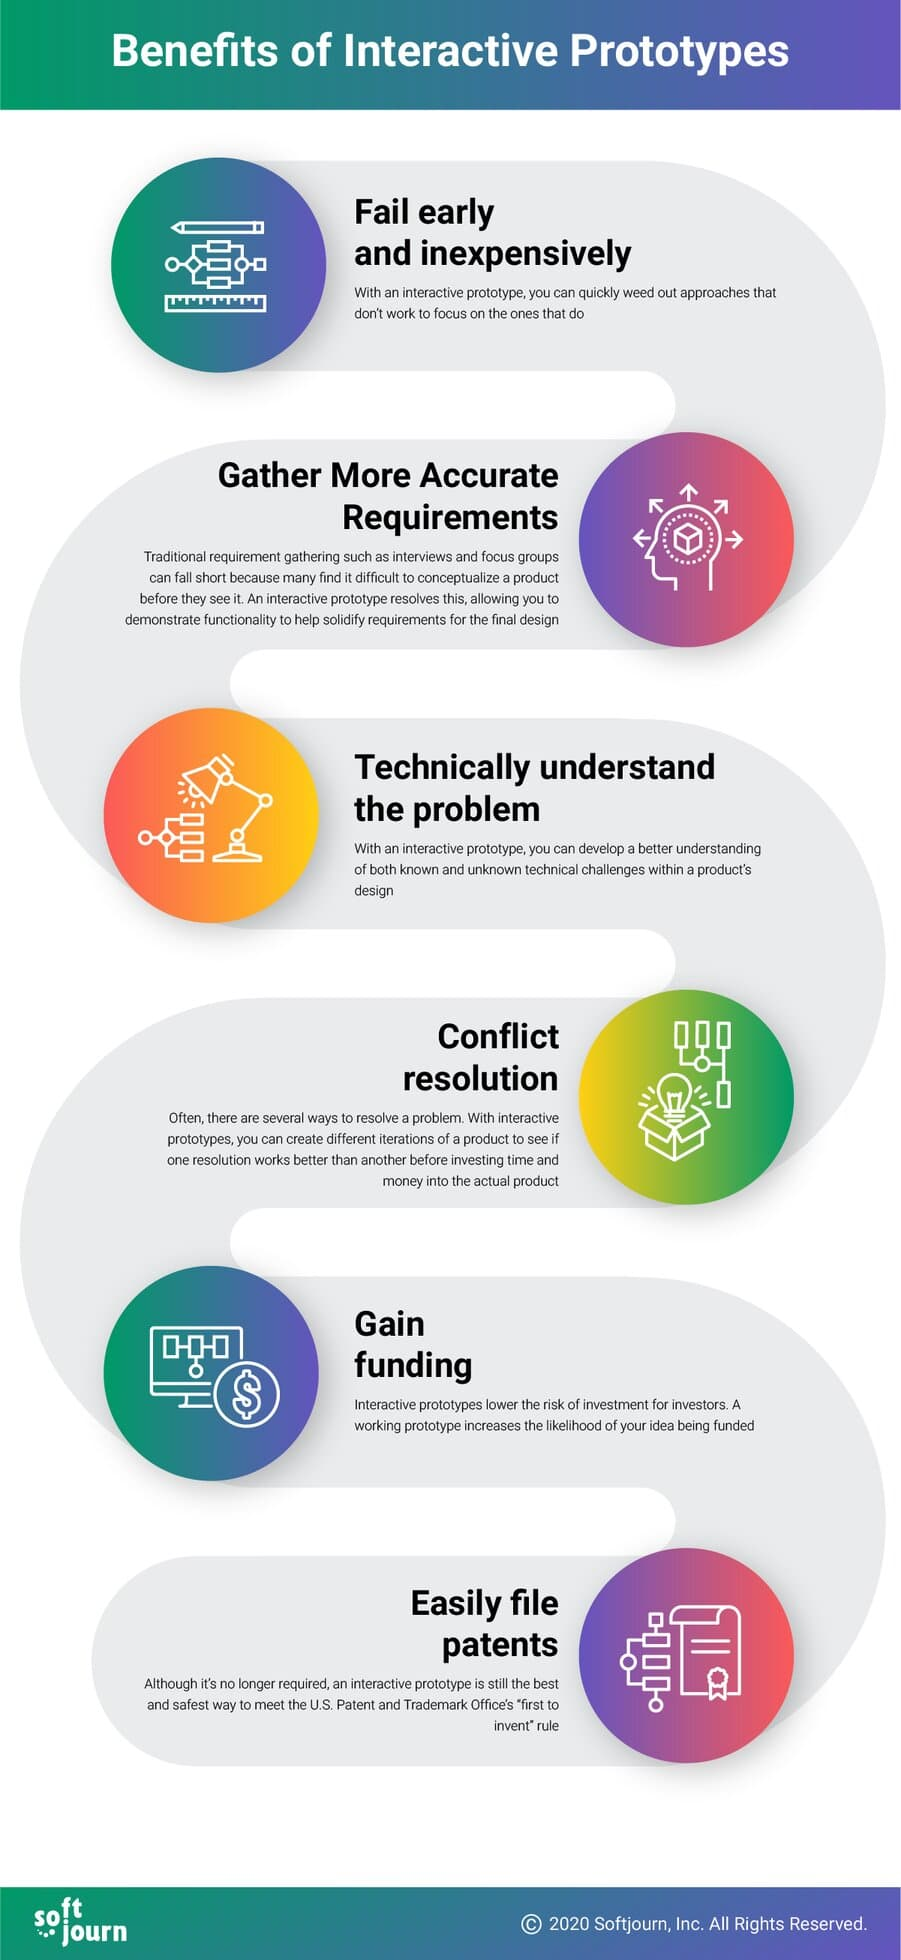 An infographic outlines the six tangible benefits offered by interactive prototypes: fail early and inexpensively, gather more accurate requirements, technically understand the problem, conflict resolution, gain funding, and easily file patents.